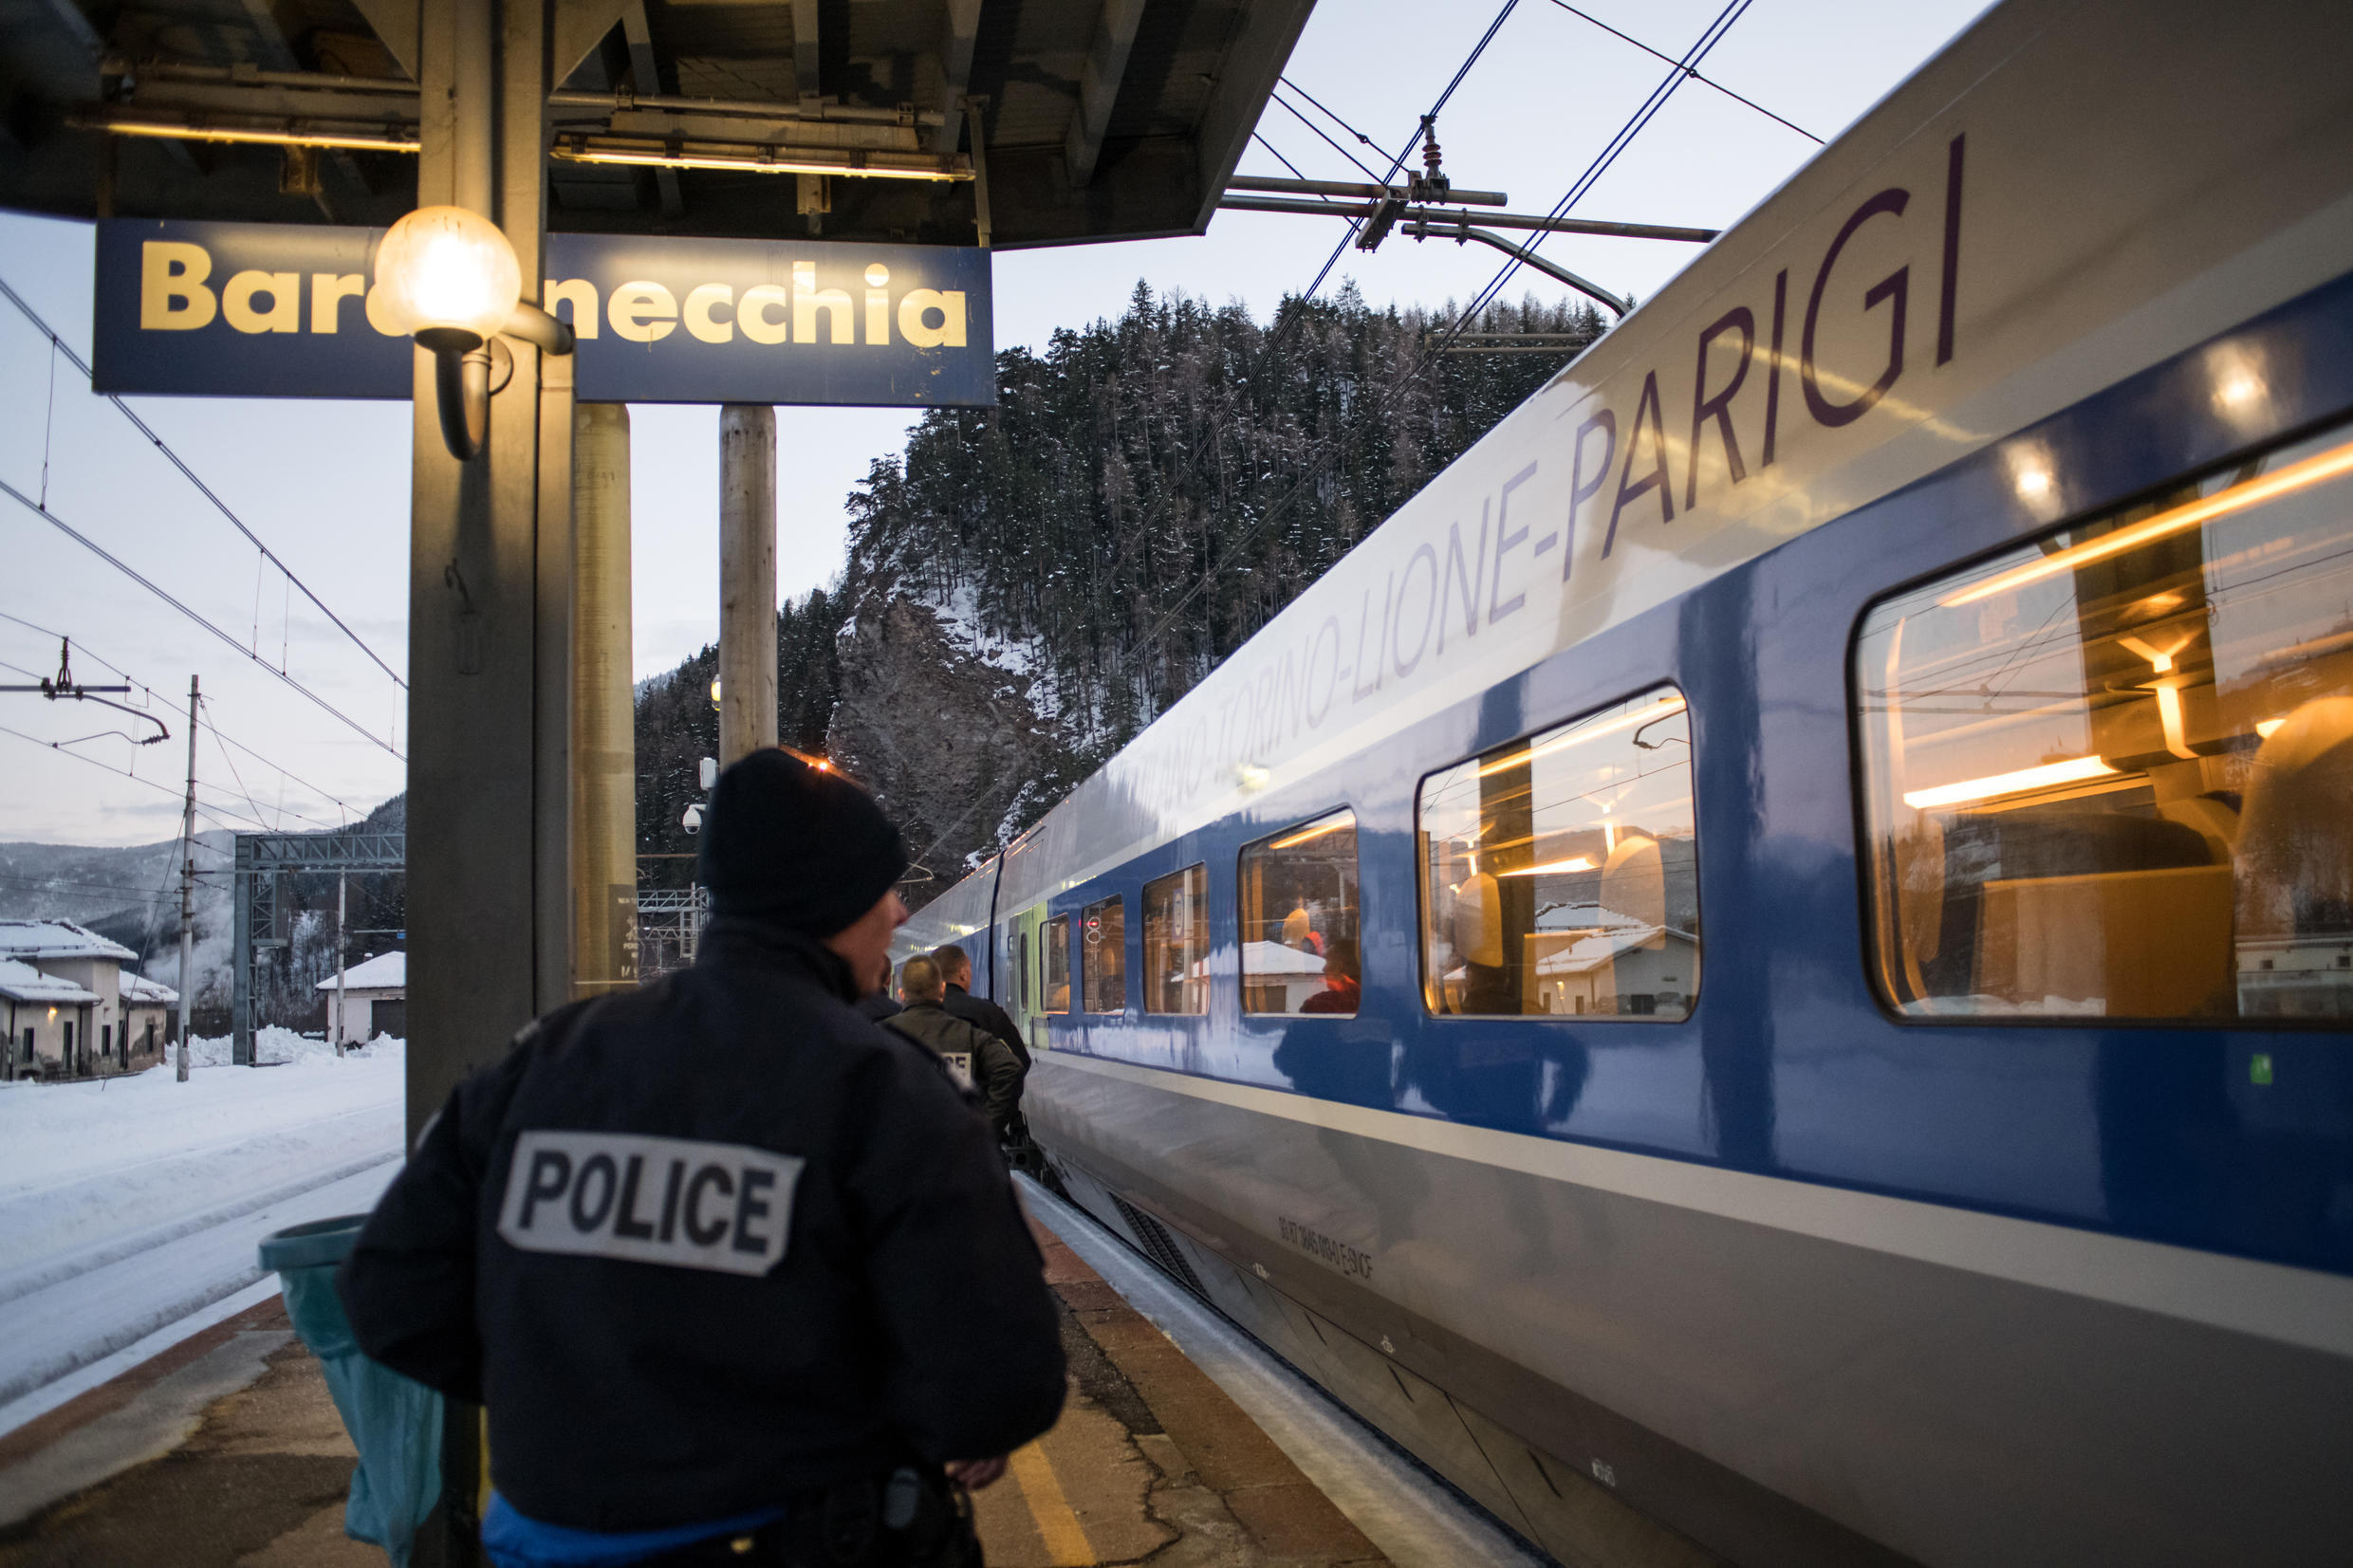 This file photo shows French police officers board a TGV train coming from Milan to Paris to control passengers at the Bardonecchia train station.